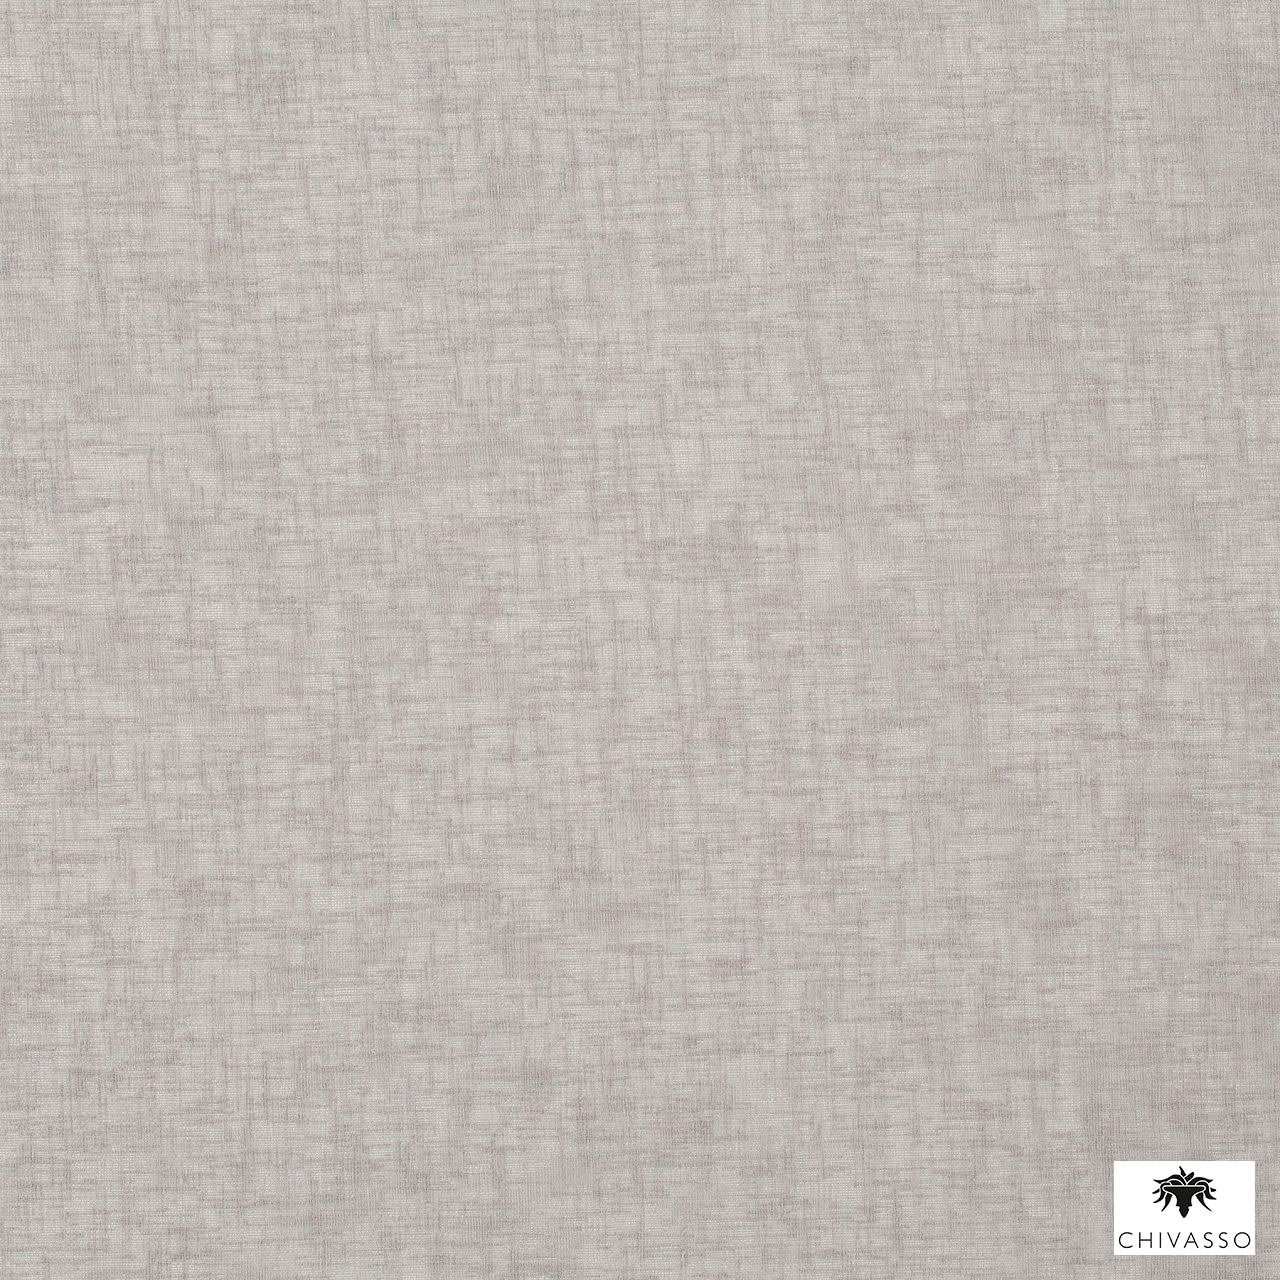 Chivasso - Stazzano - Ce5116-092  | Curtain Fabric - Grey, Plain, Synthetic, Domestic Use, Railroaded, Wide Width